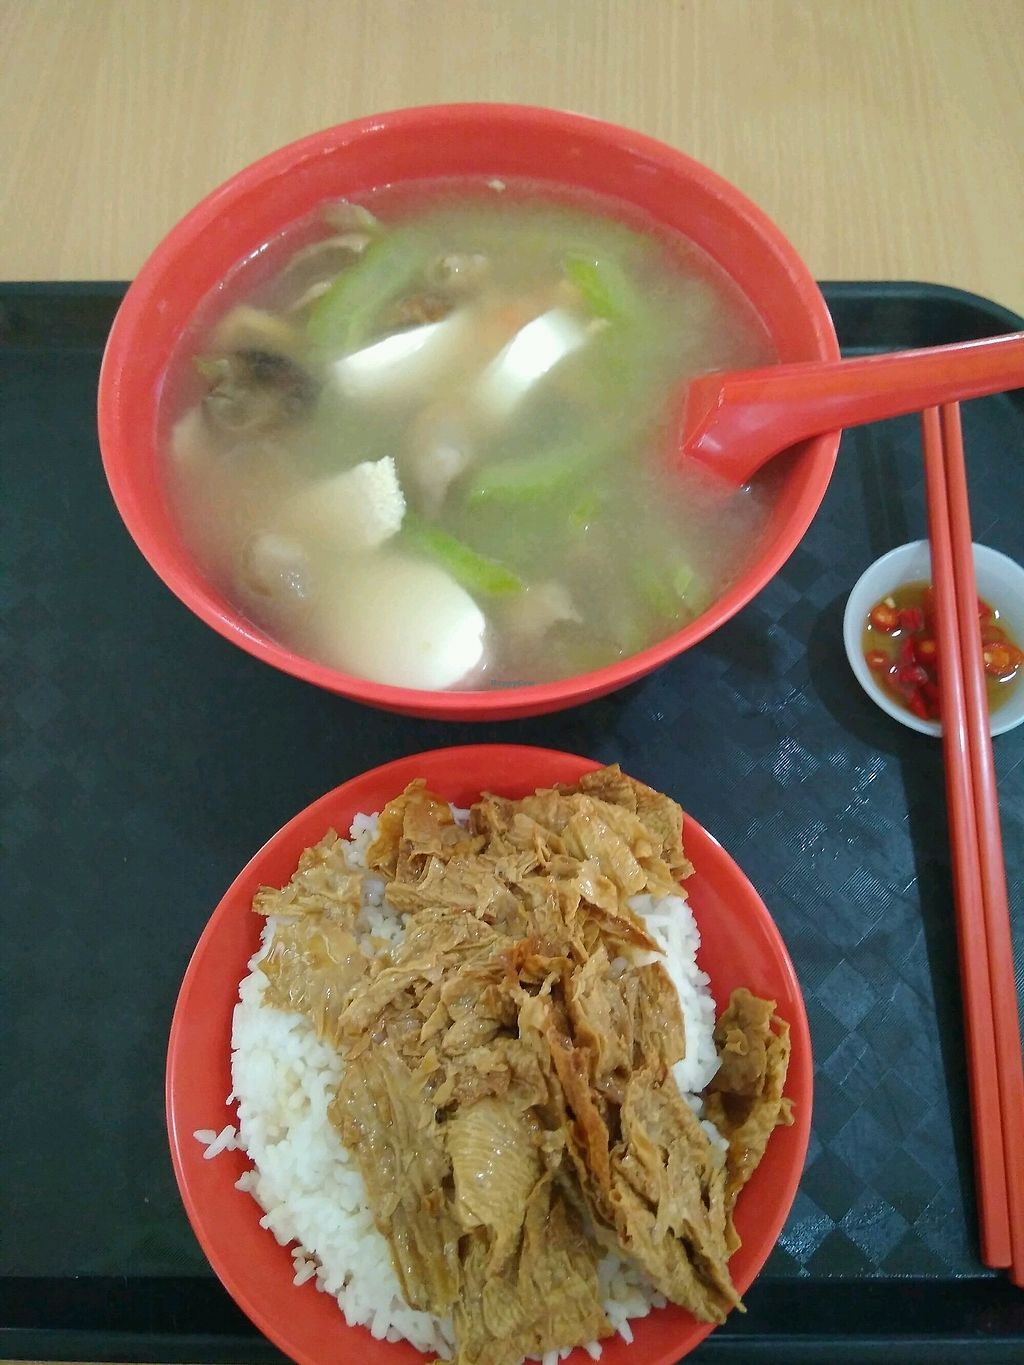 """Photo of Zervex Building Vegetarian Stall  by <a href=""""/members/profile/RichardLee"""">RichardLee</a> <br/>Bittergourd soup rice set <br/> February 9, 2018  - <a href='/contact/abuse/image/111564/356787'>Report</a>"""